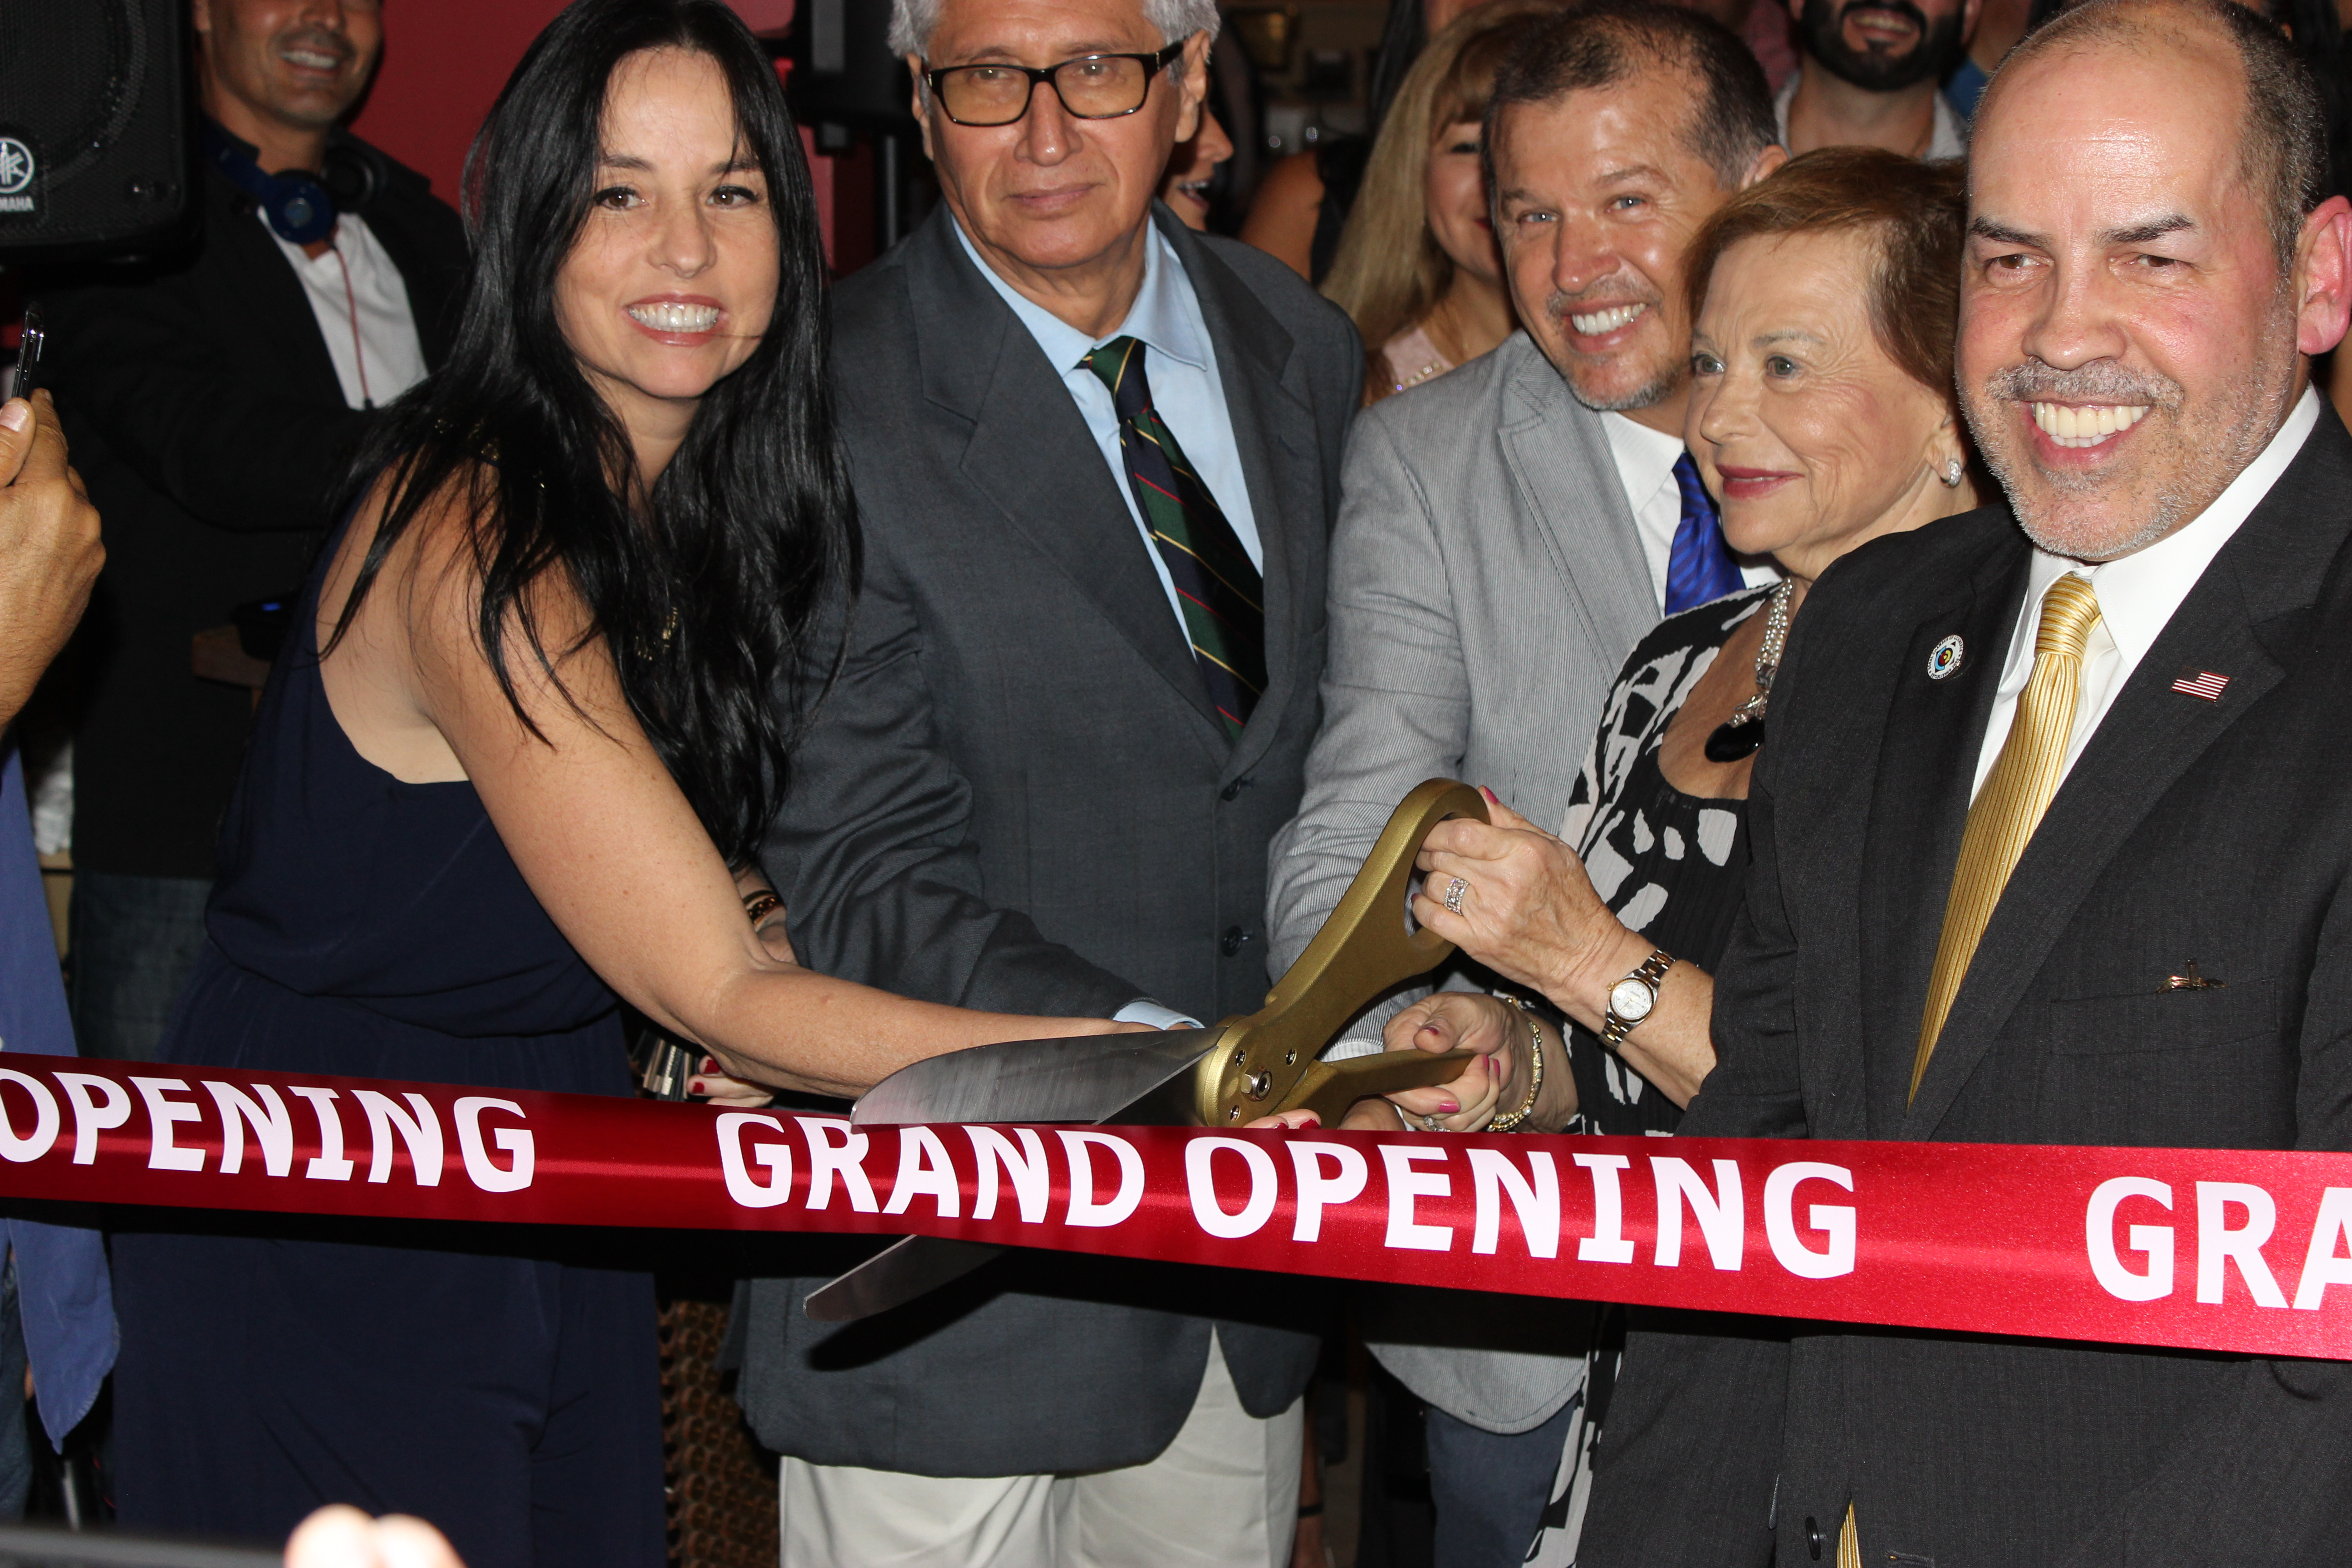 Doral Chamber of Commerce introduces El Gran Inka Grand Opening.